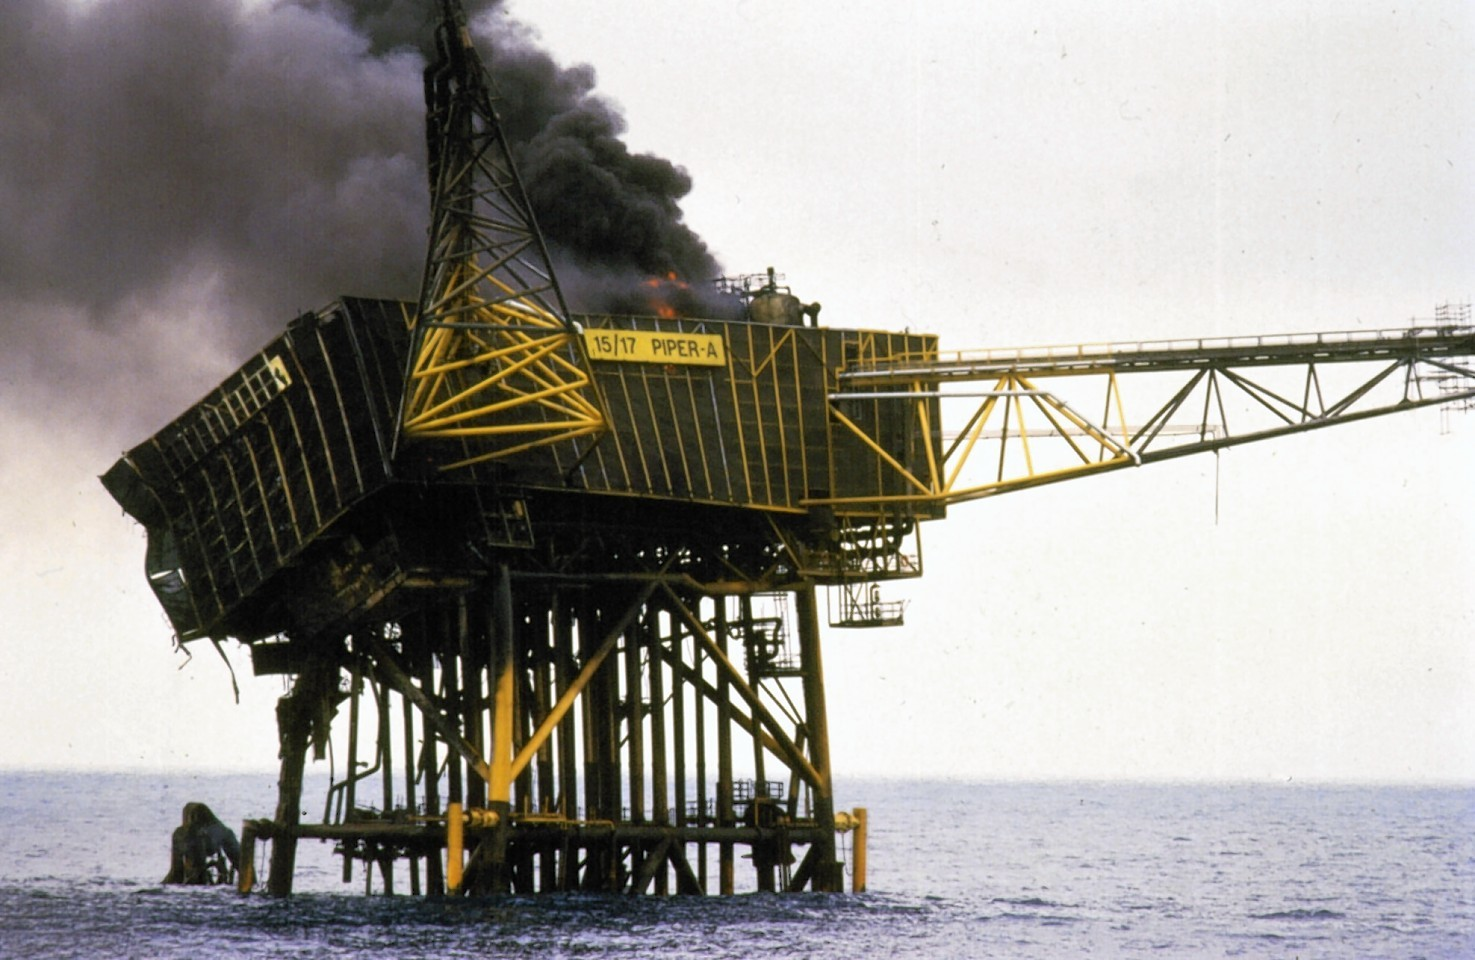 service to commemorate piper alpha victims 30 years on